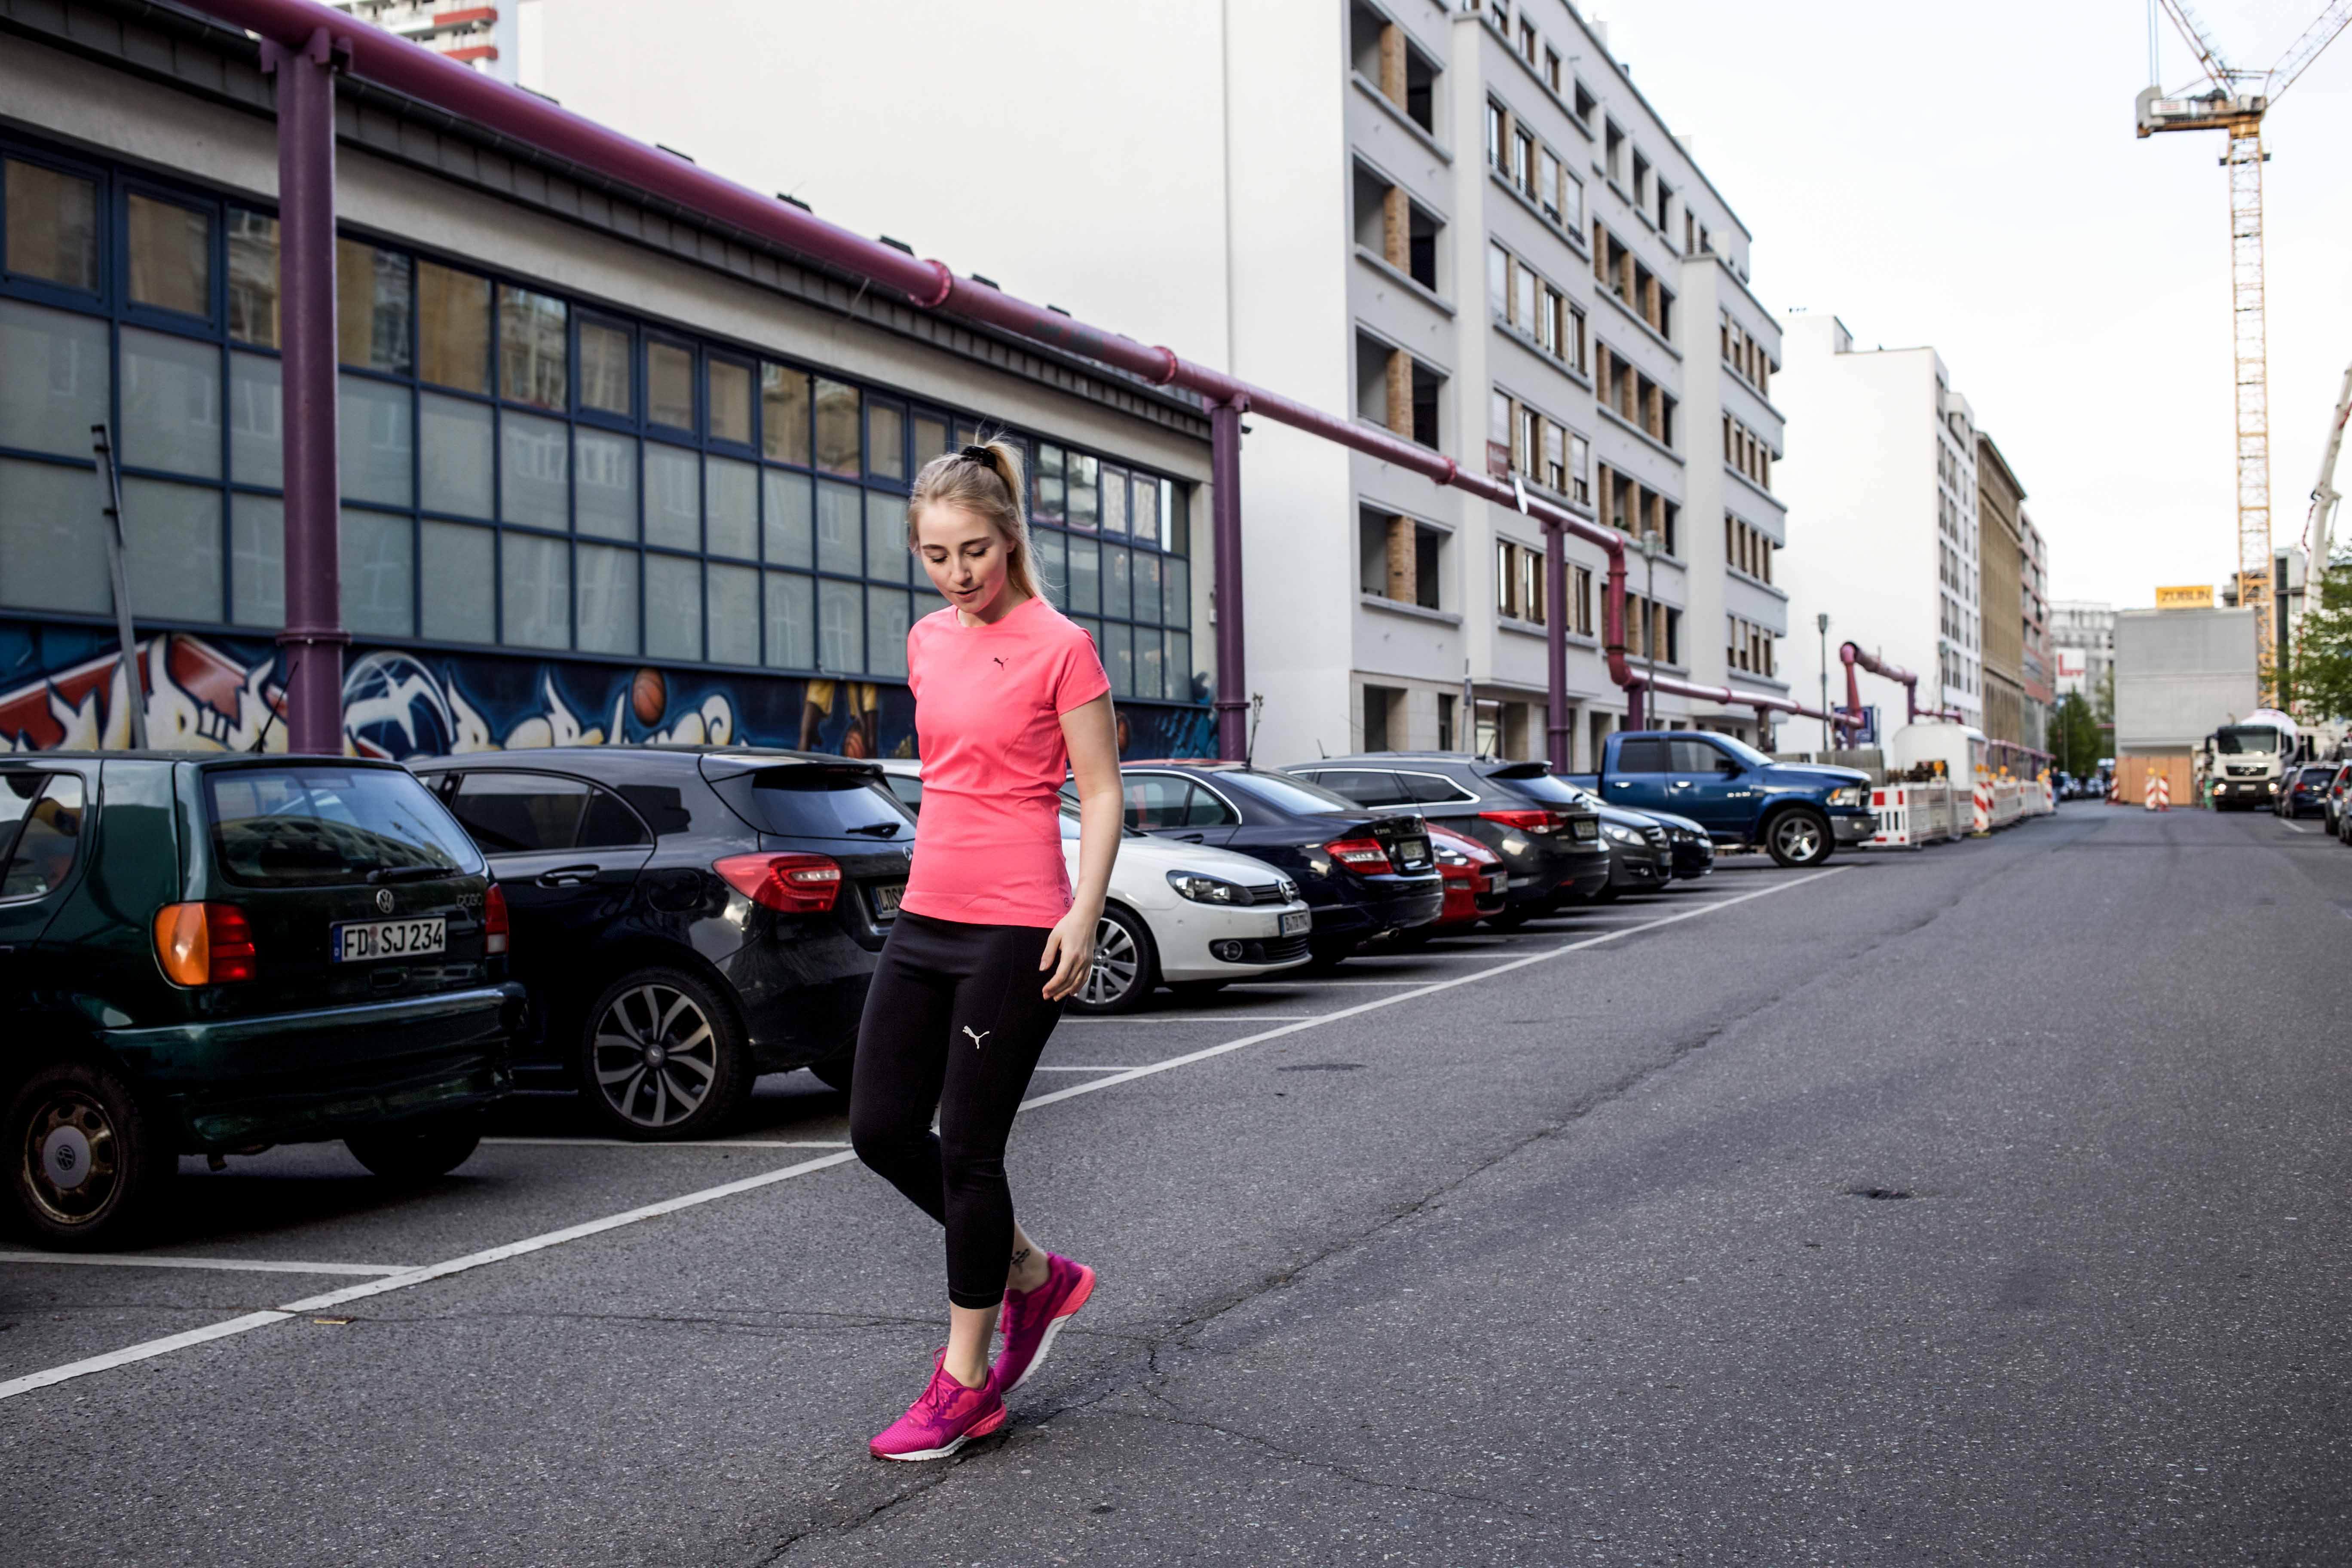 puma-lauf-outfit-laufen-tipps-joggen-mode-fitness-gym-workout-sport_8316